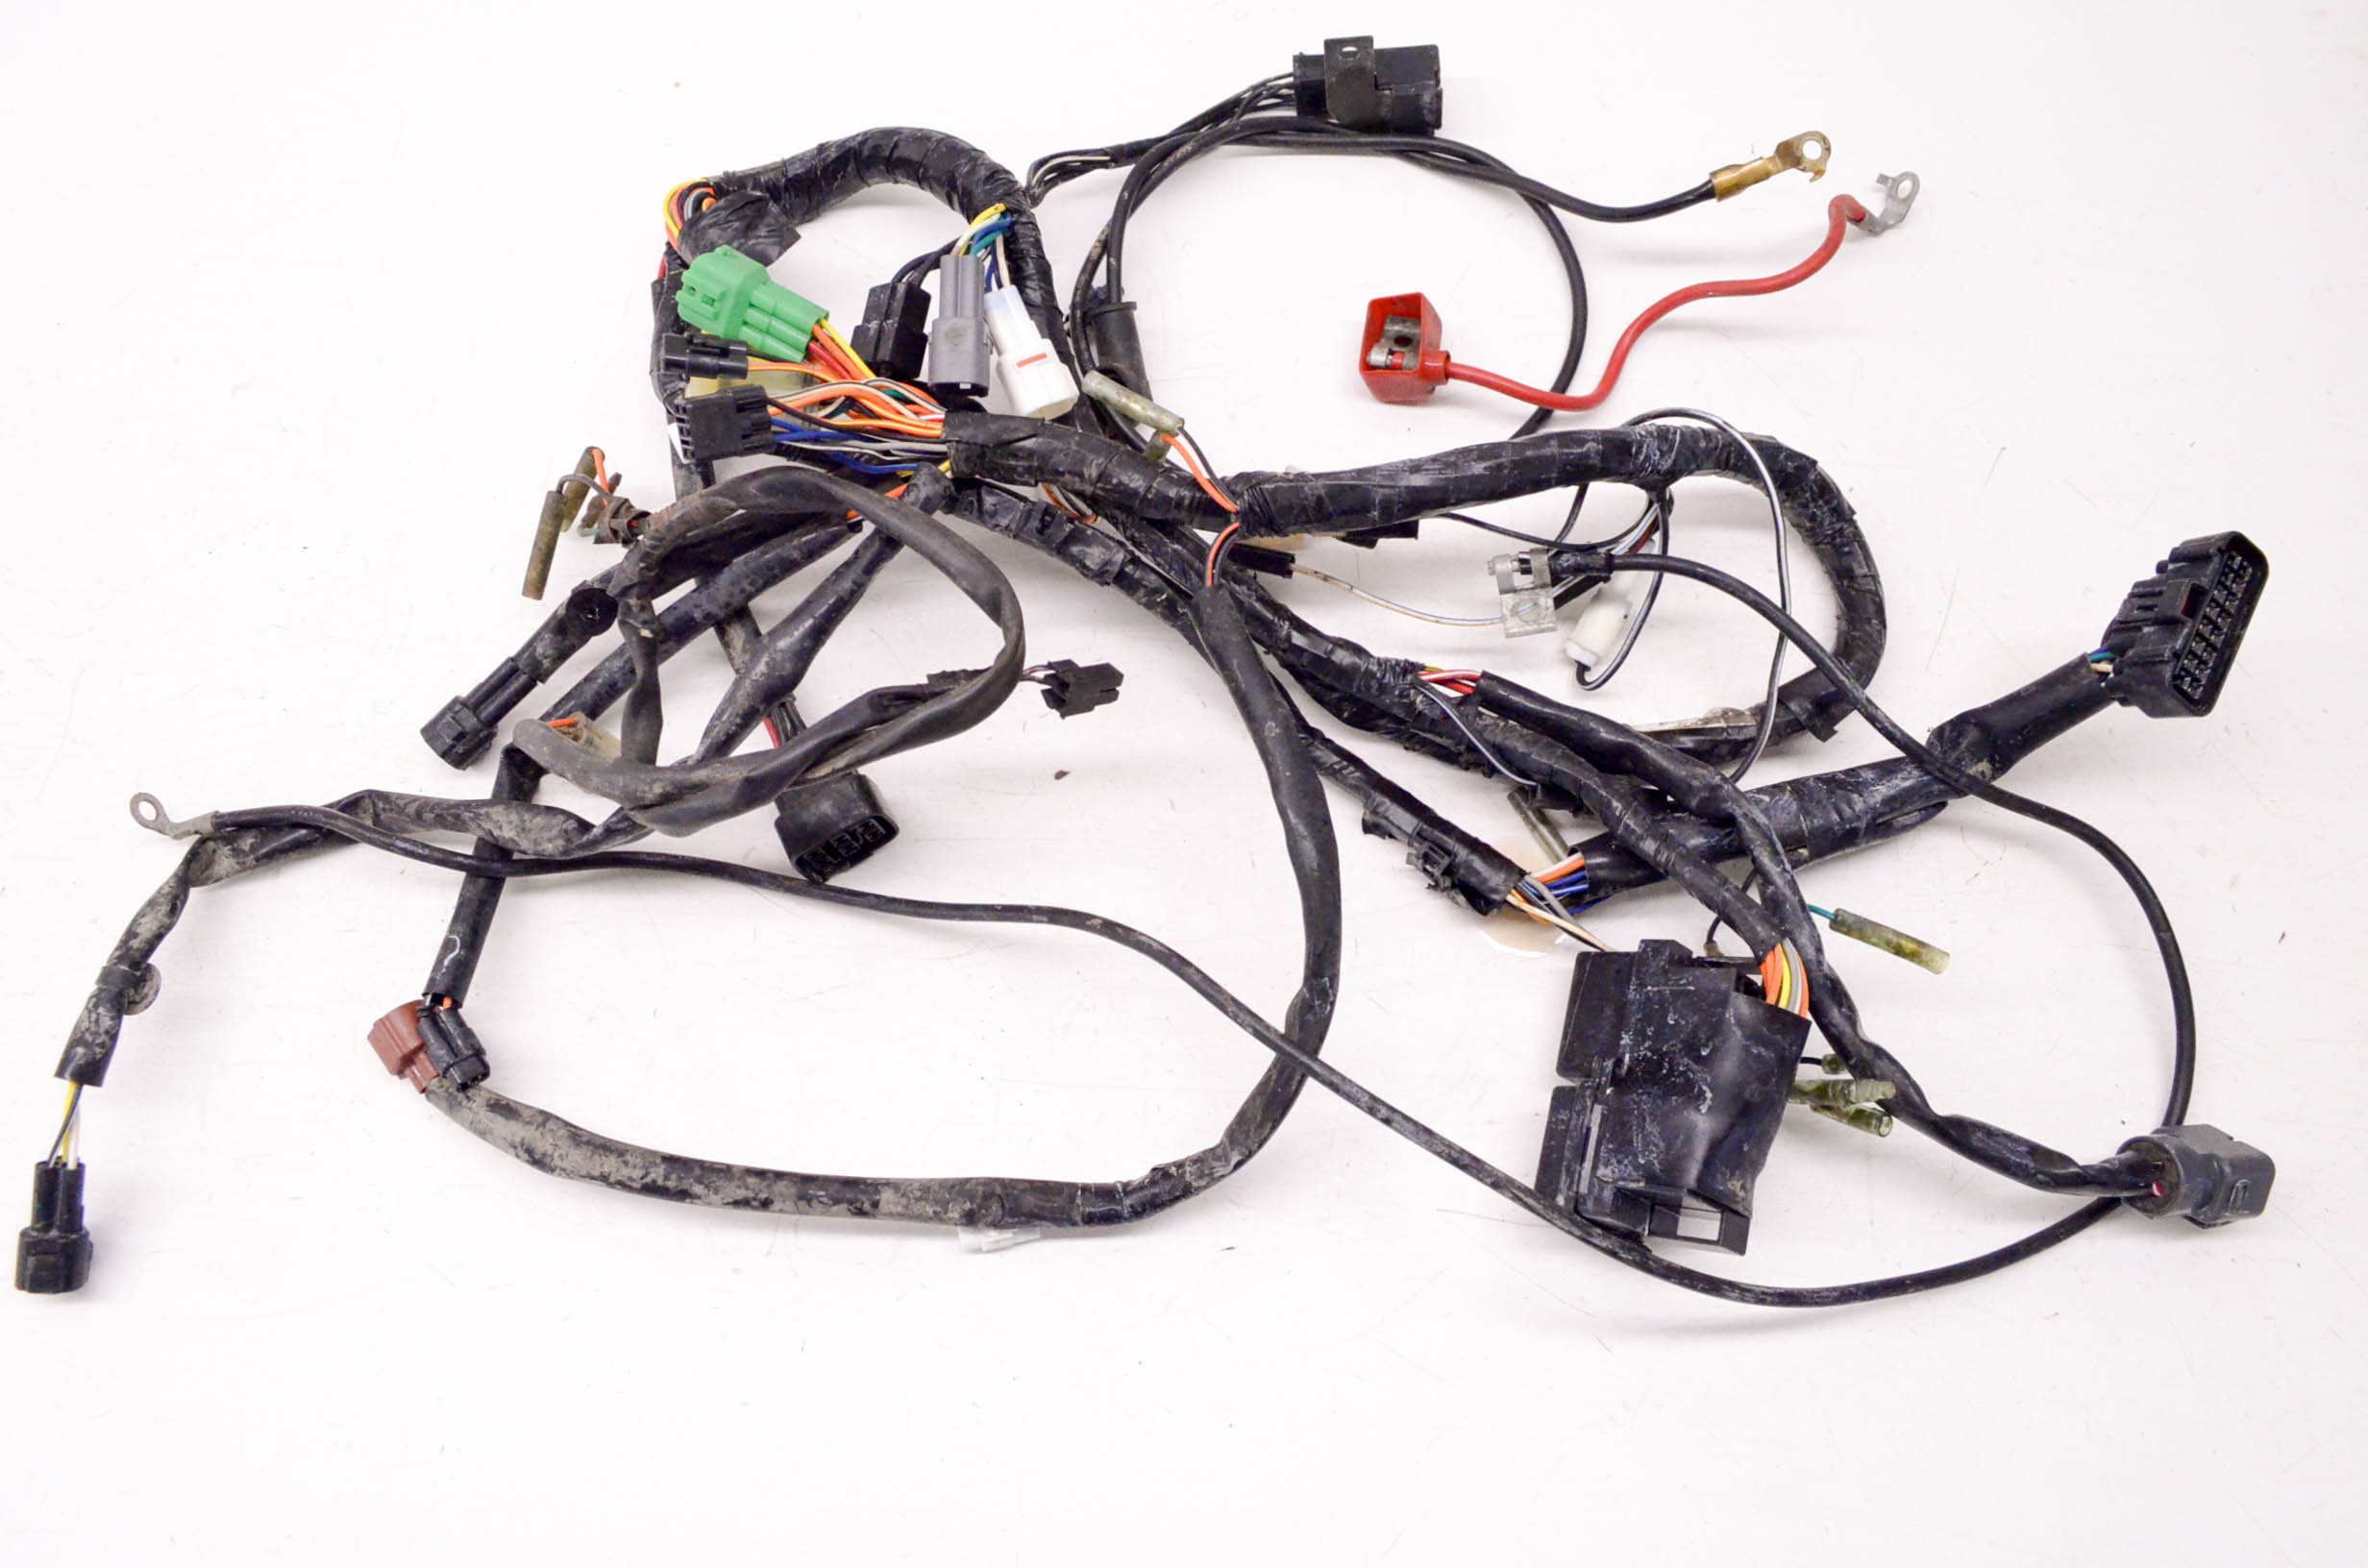 07 Suzuki Eiger 400 4x4 Wire Harness Electrical Wiring Lta400f